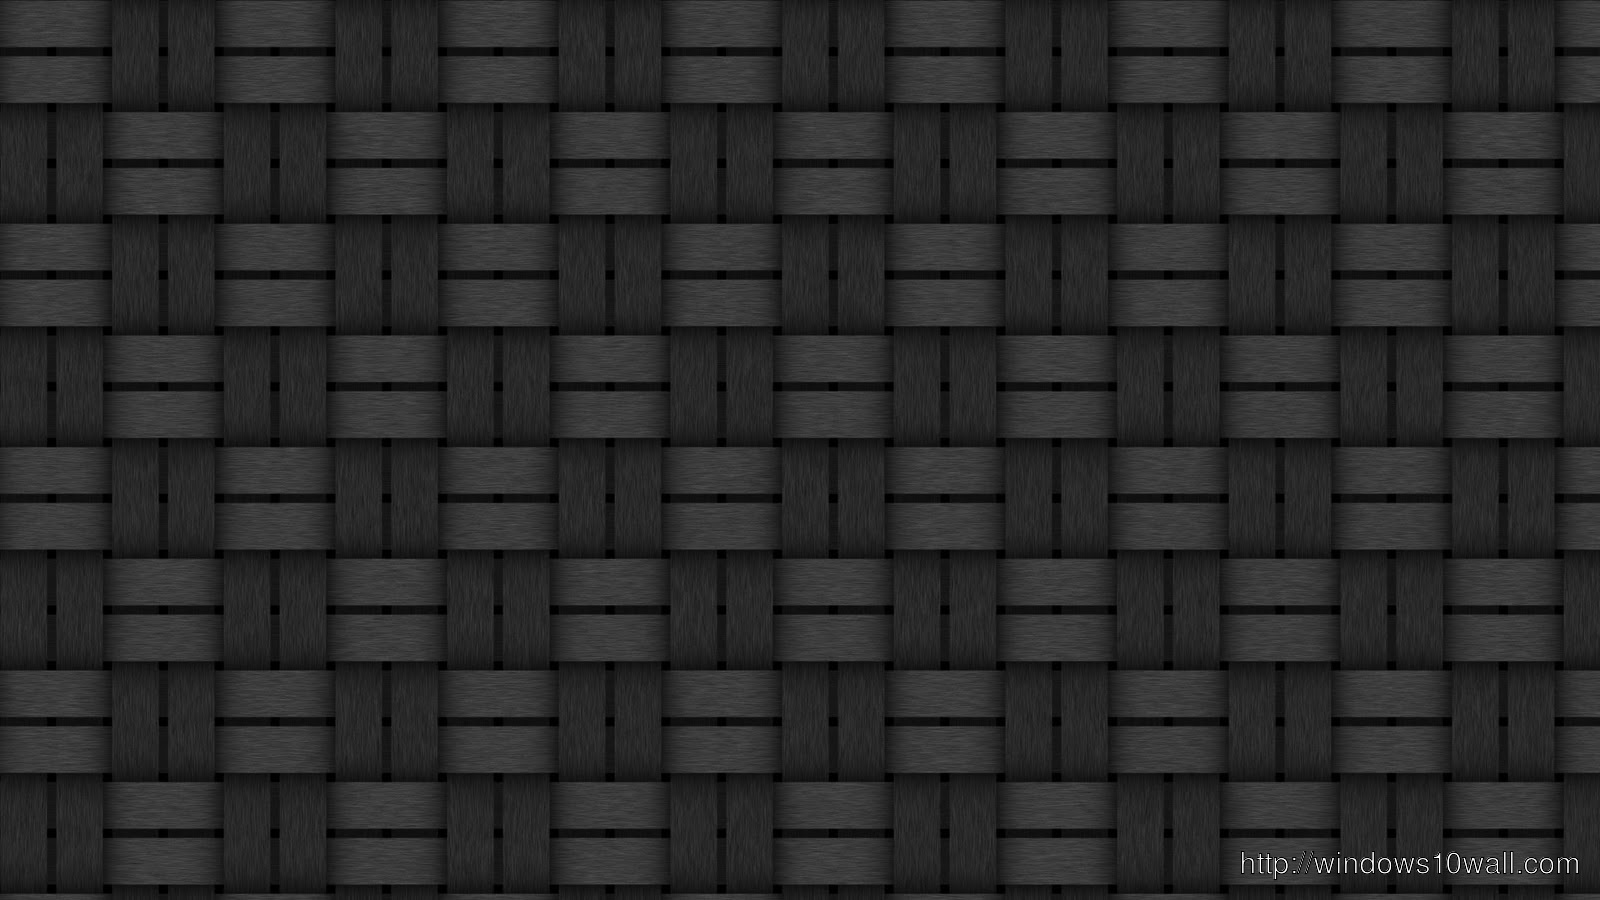 Black-squares-weaved-background-hd-Wallpaper